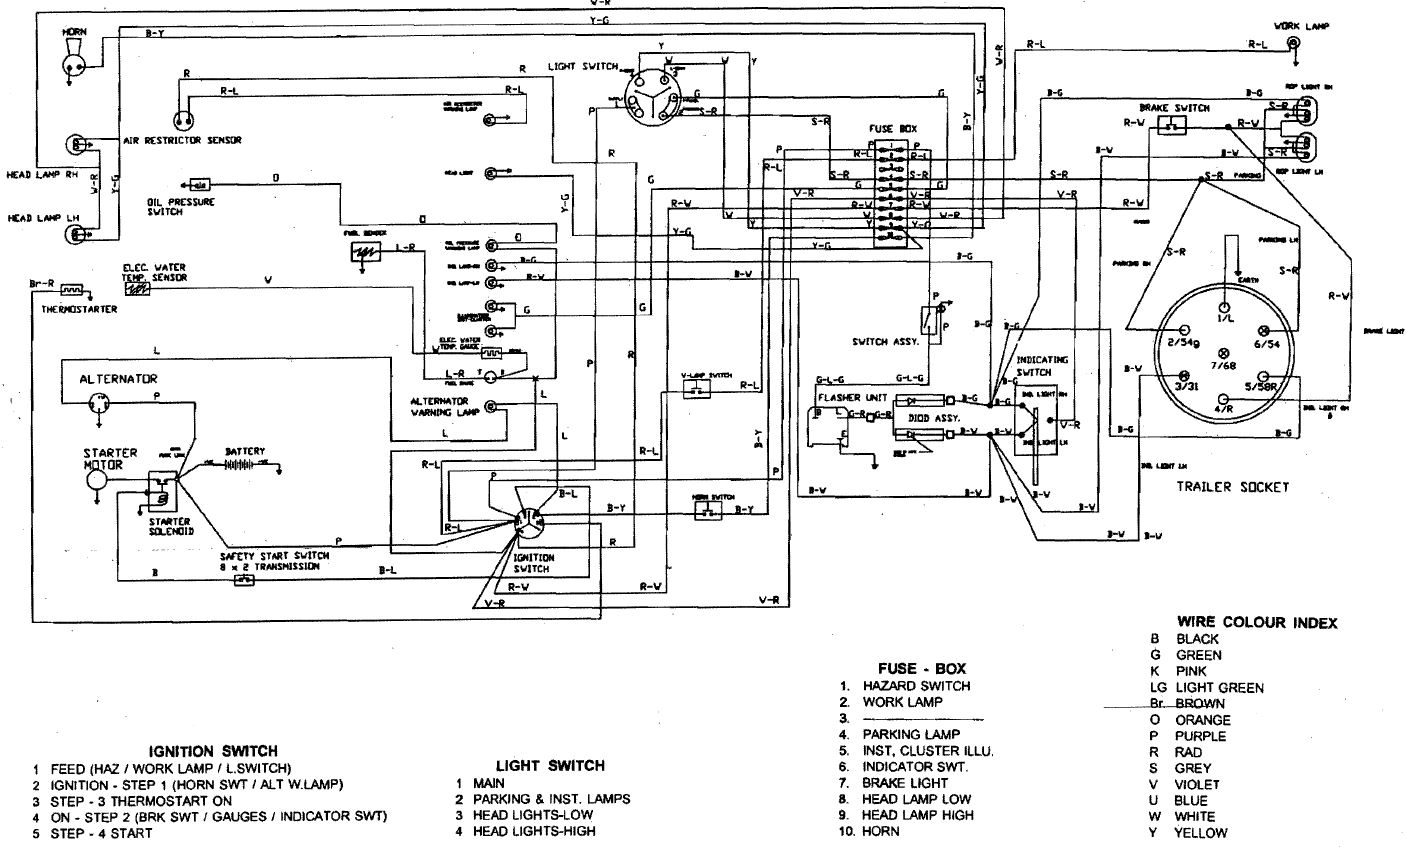 20158463319_b82d524c3d_o ignition switch wiring diagram john deere 425 wiring diagram at bayanpartner.co